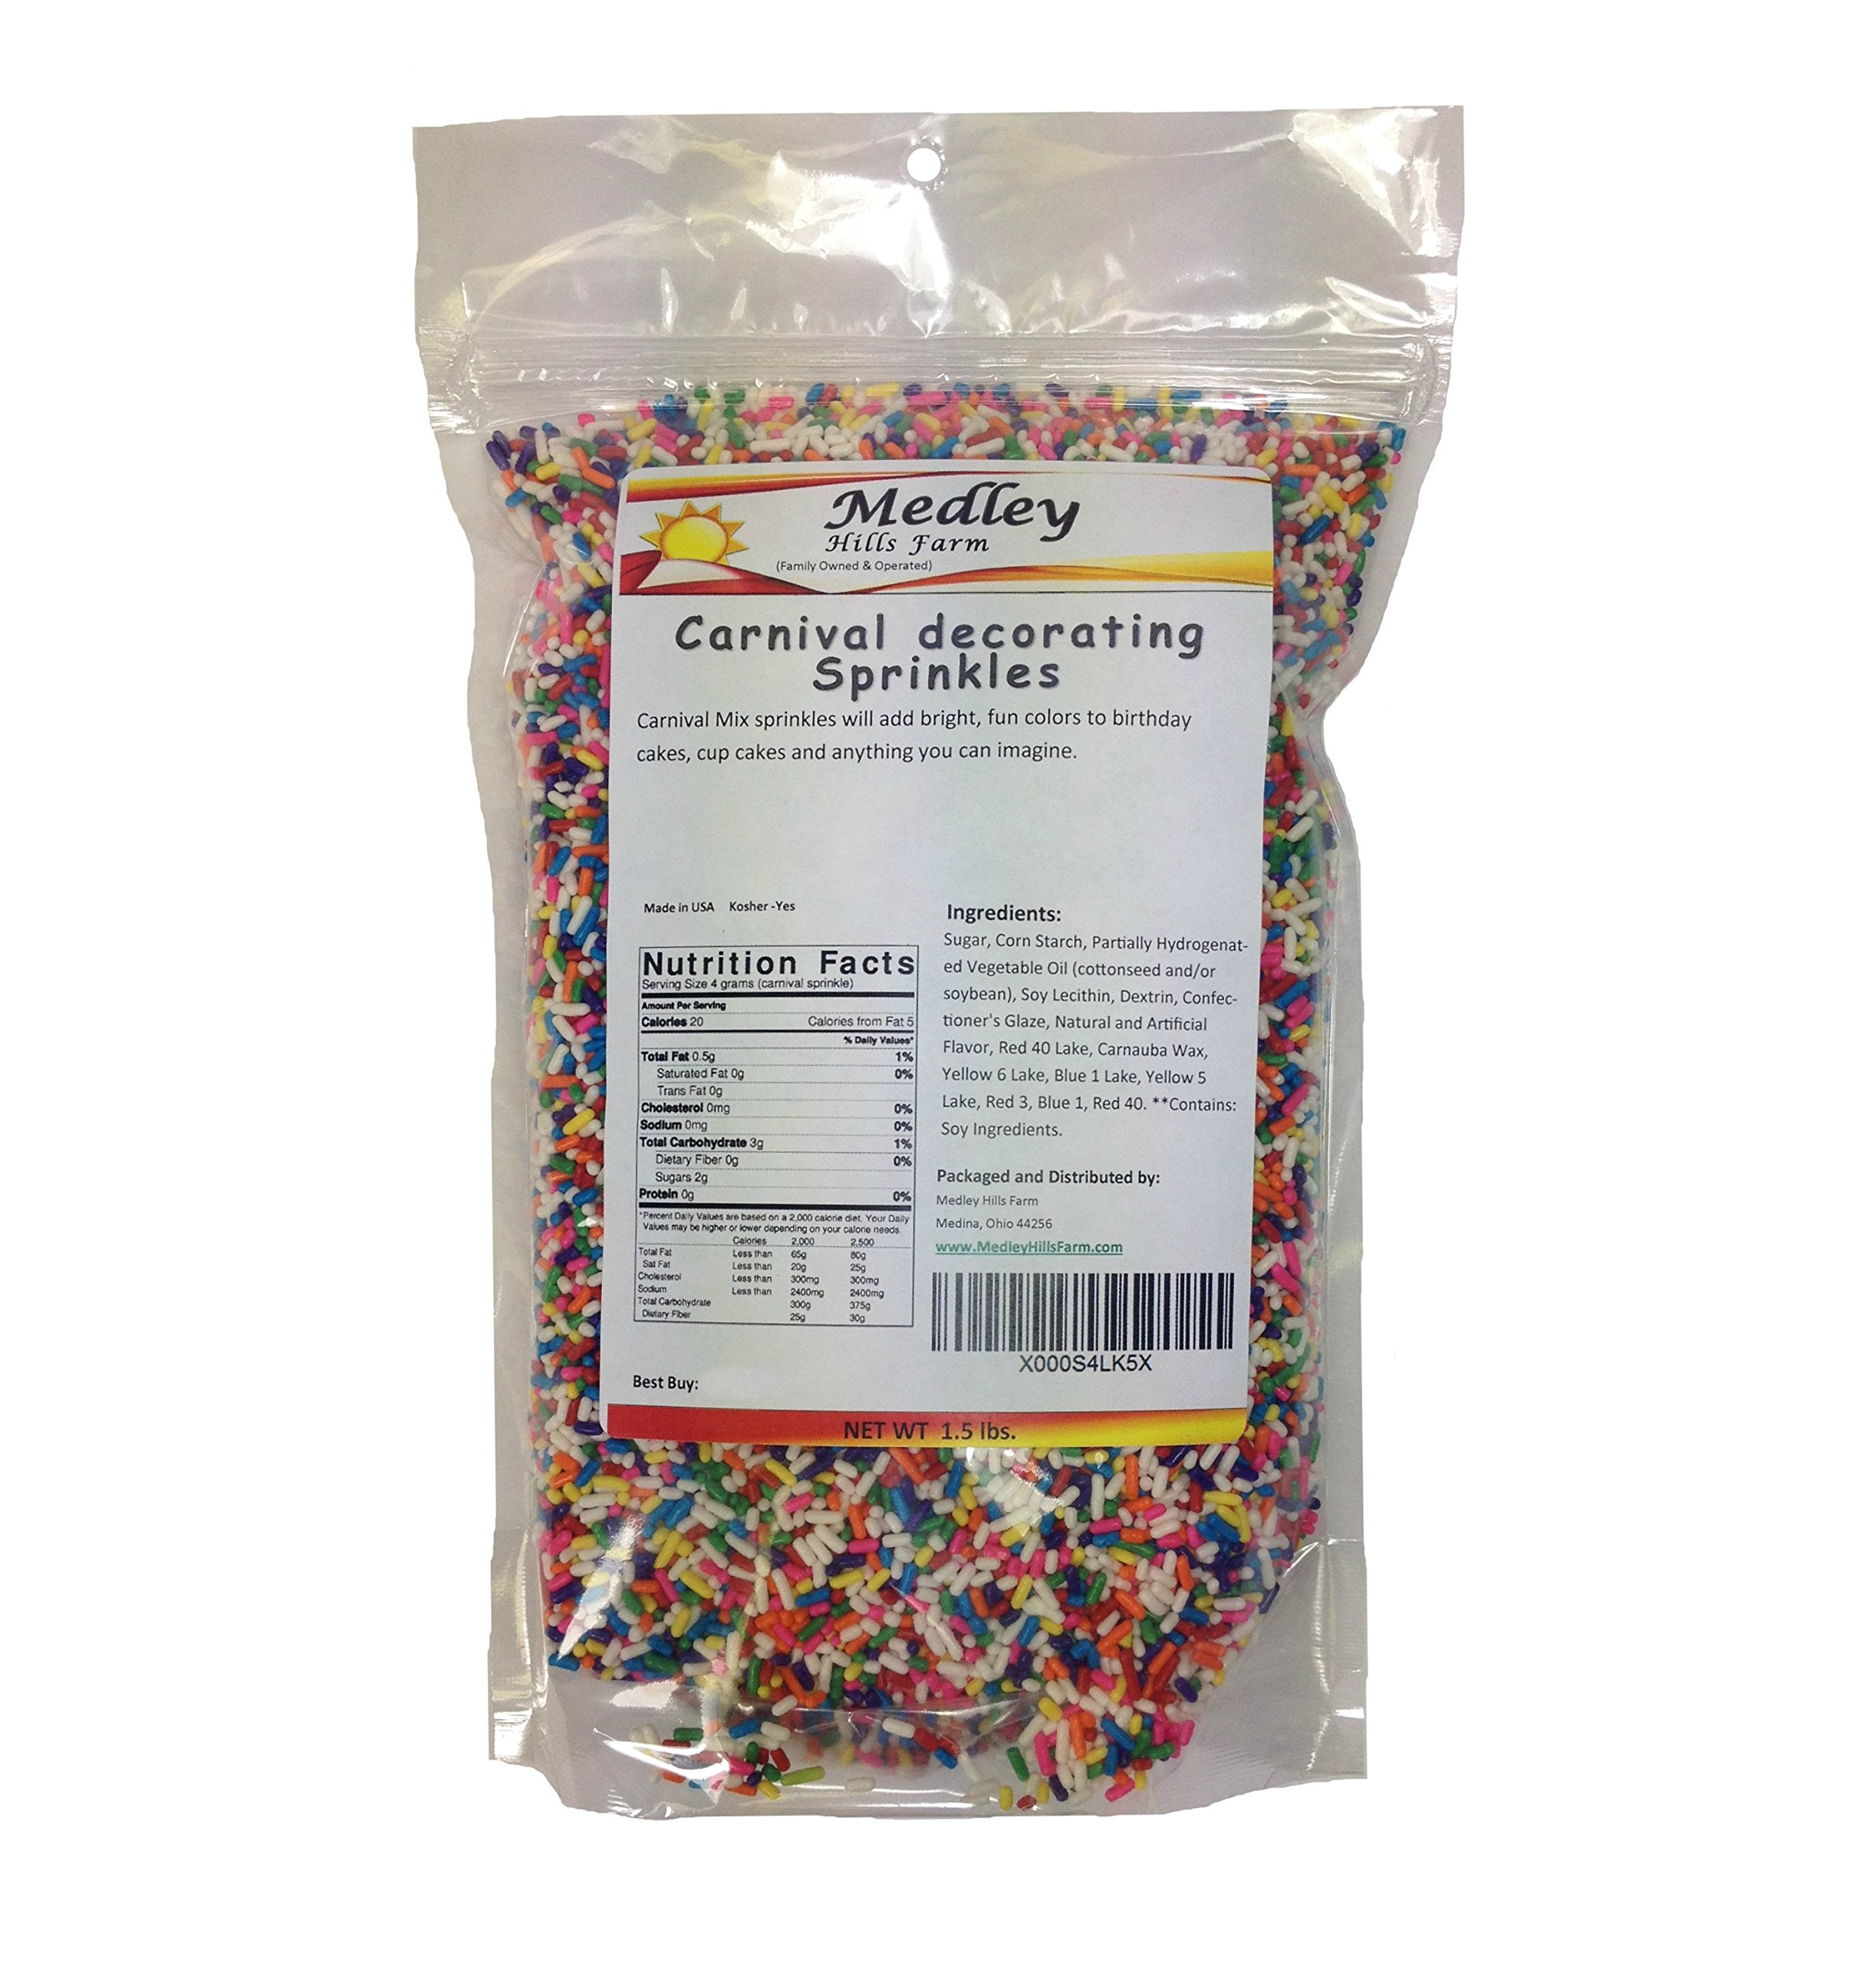 Carnival decorating Sprinkles Mix 1.5 lbs , by Medley Hills Farm